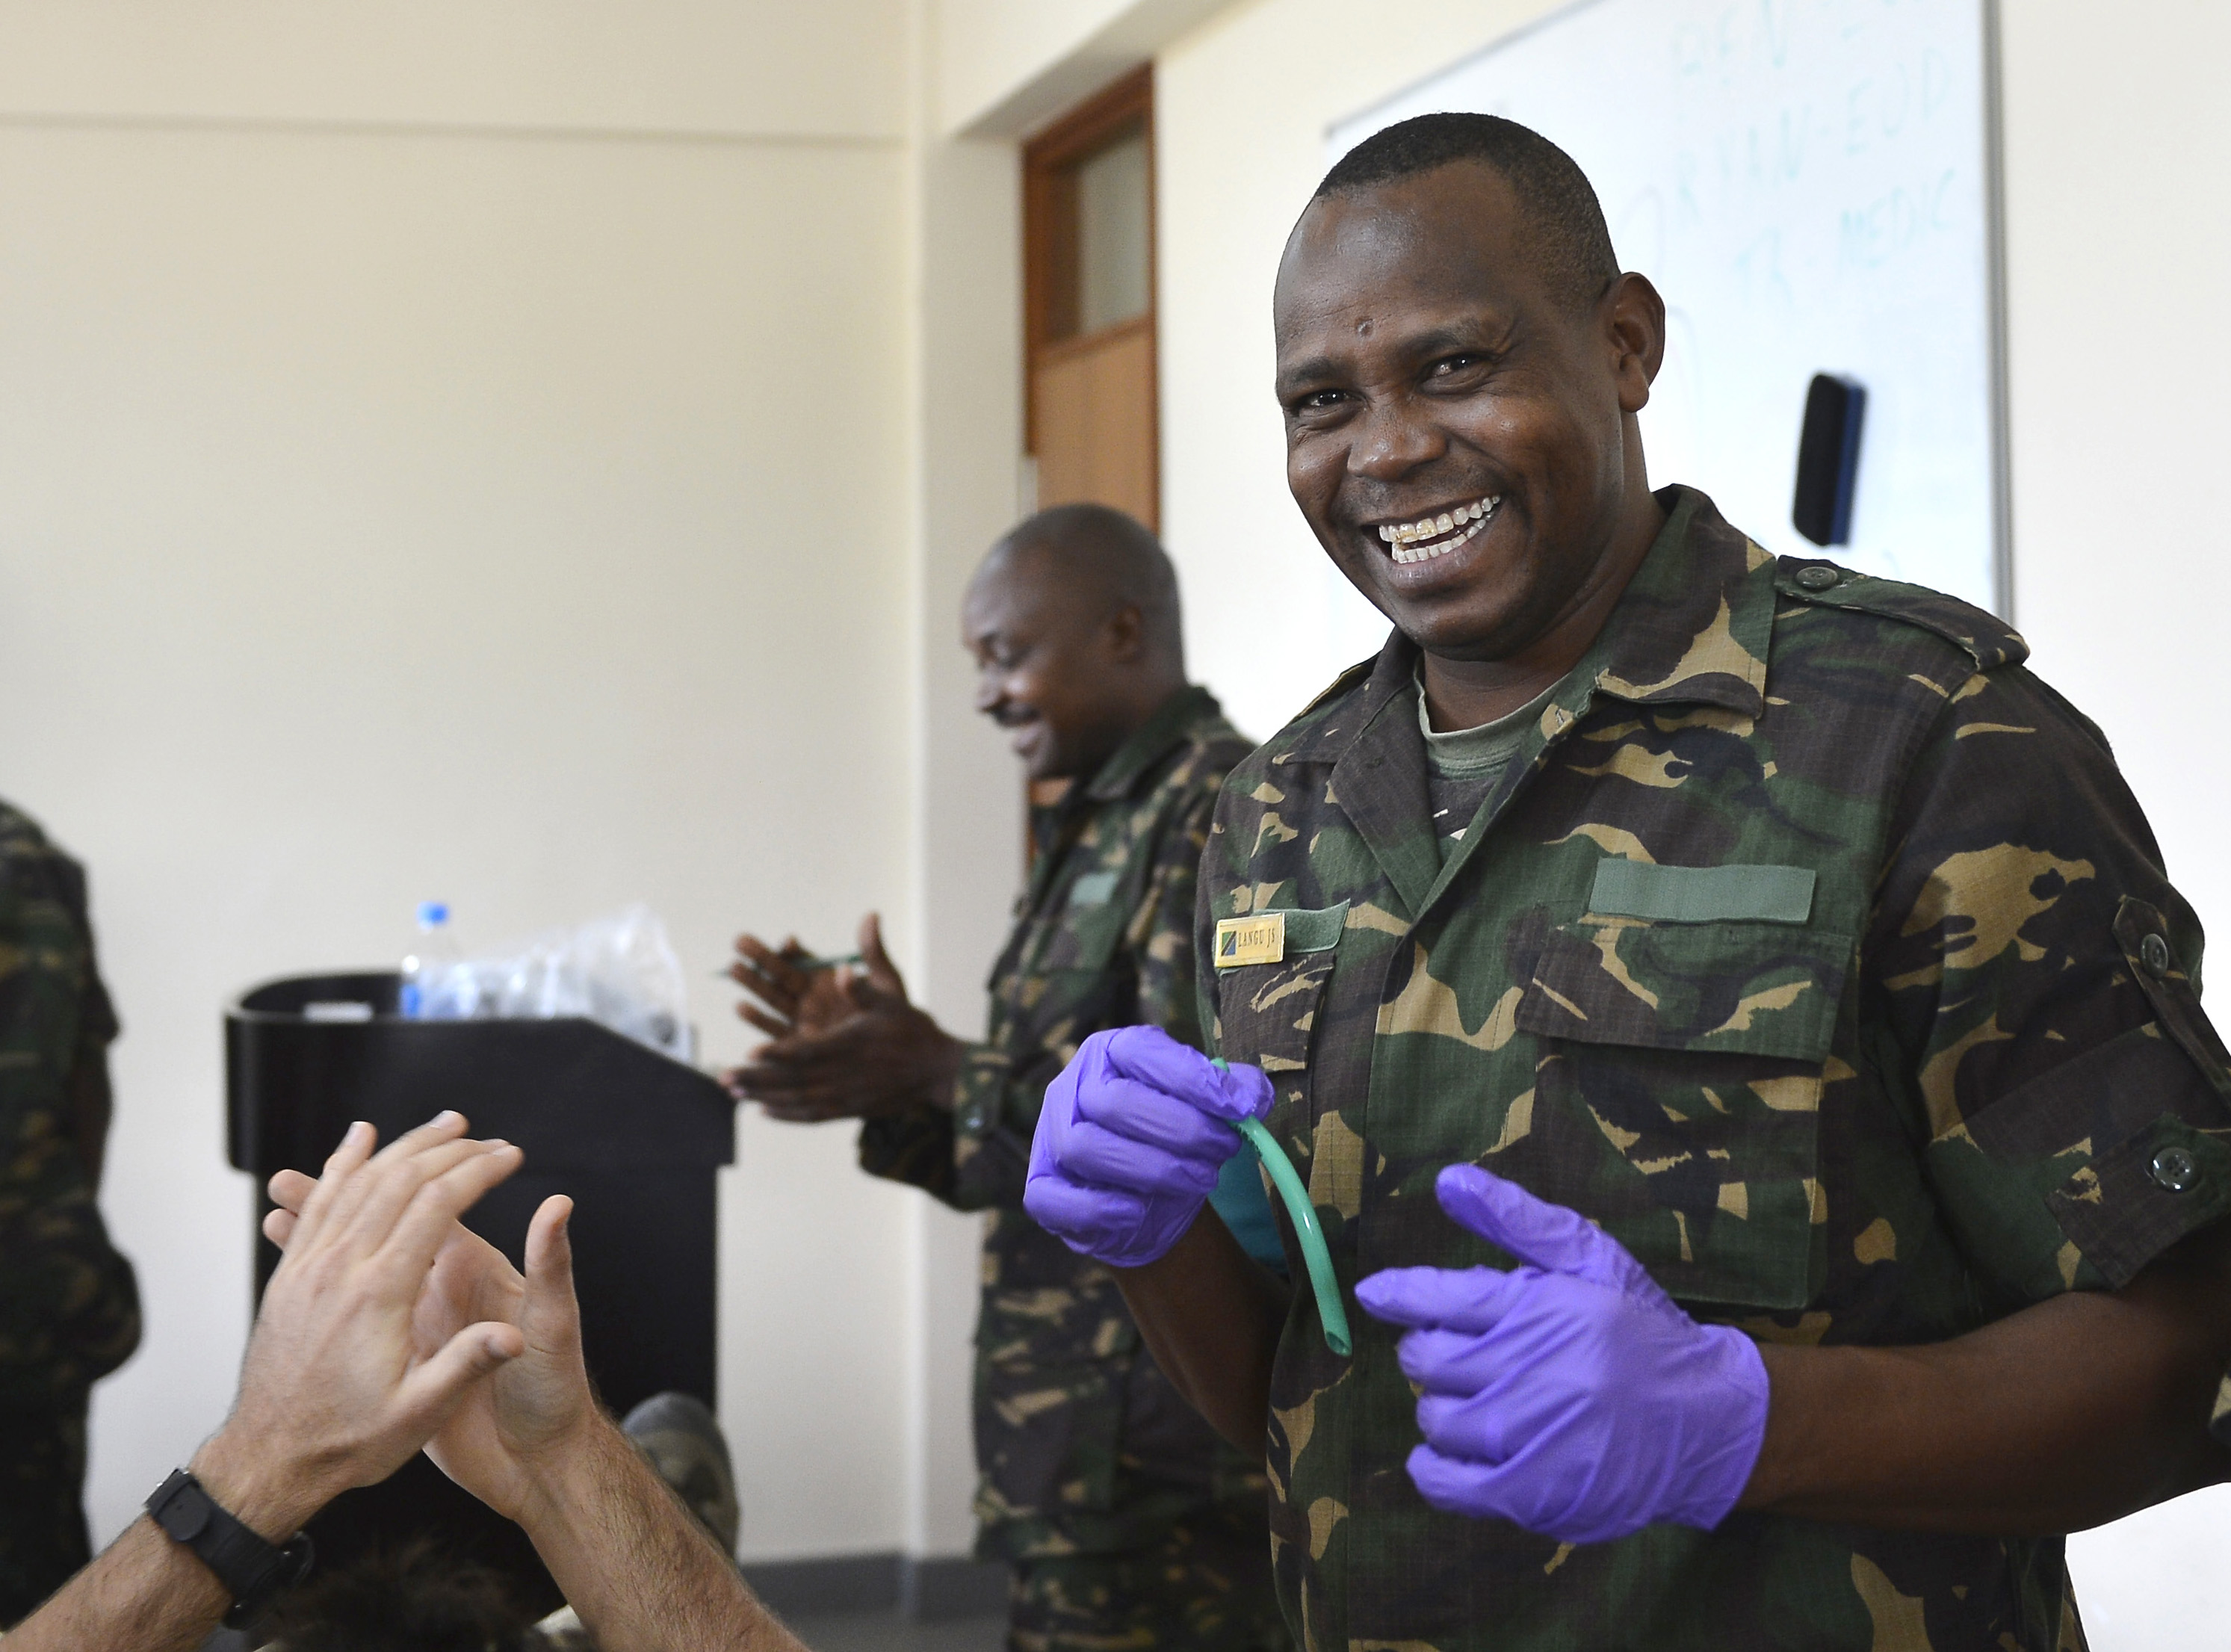 Cpl. Joseph S. Langu, Tanzania People's Defense Force ammunition technician, holds a nasopharyngeal airway during a tactical combat casualty  care first aid course at the Peace Keeping Training Center in Dar es Salaam, Tanzania Aug. 23, 2015. TPDF hosted a Humanitarian Action Course where U.S. Navy Explosive Ordnance Disposal technicians, assigned to Combined Joint Task Force-Horn of Africa, shared best practices on medical procedures, ordnance safety and identification.